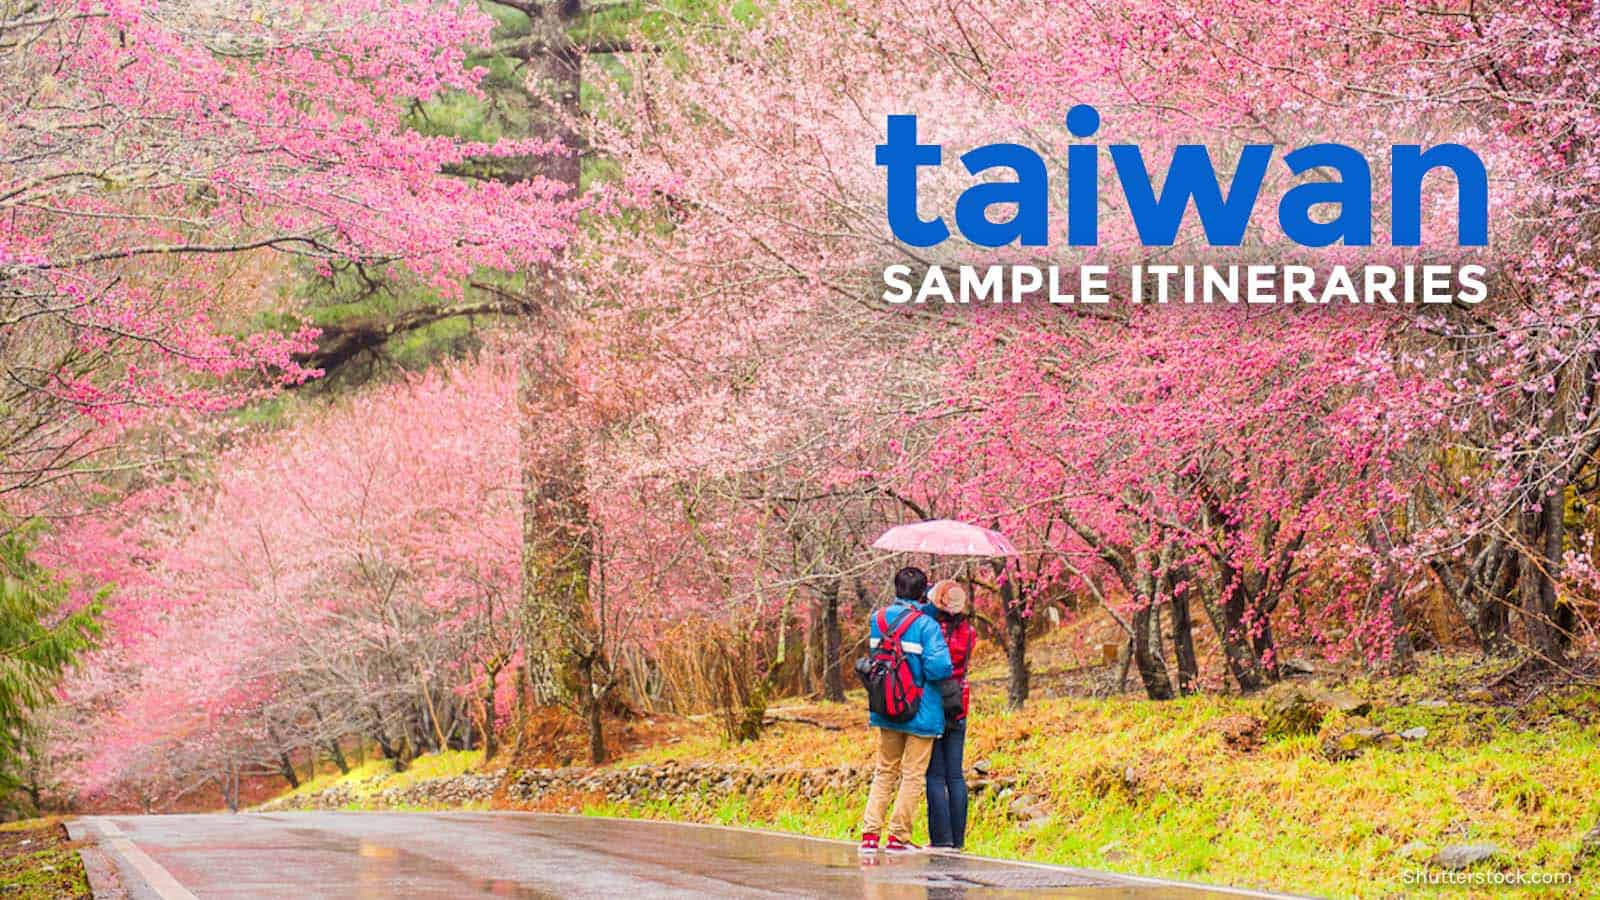 Taiwan Sample Itineraries